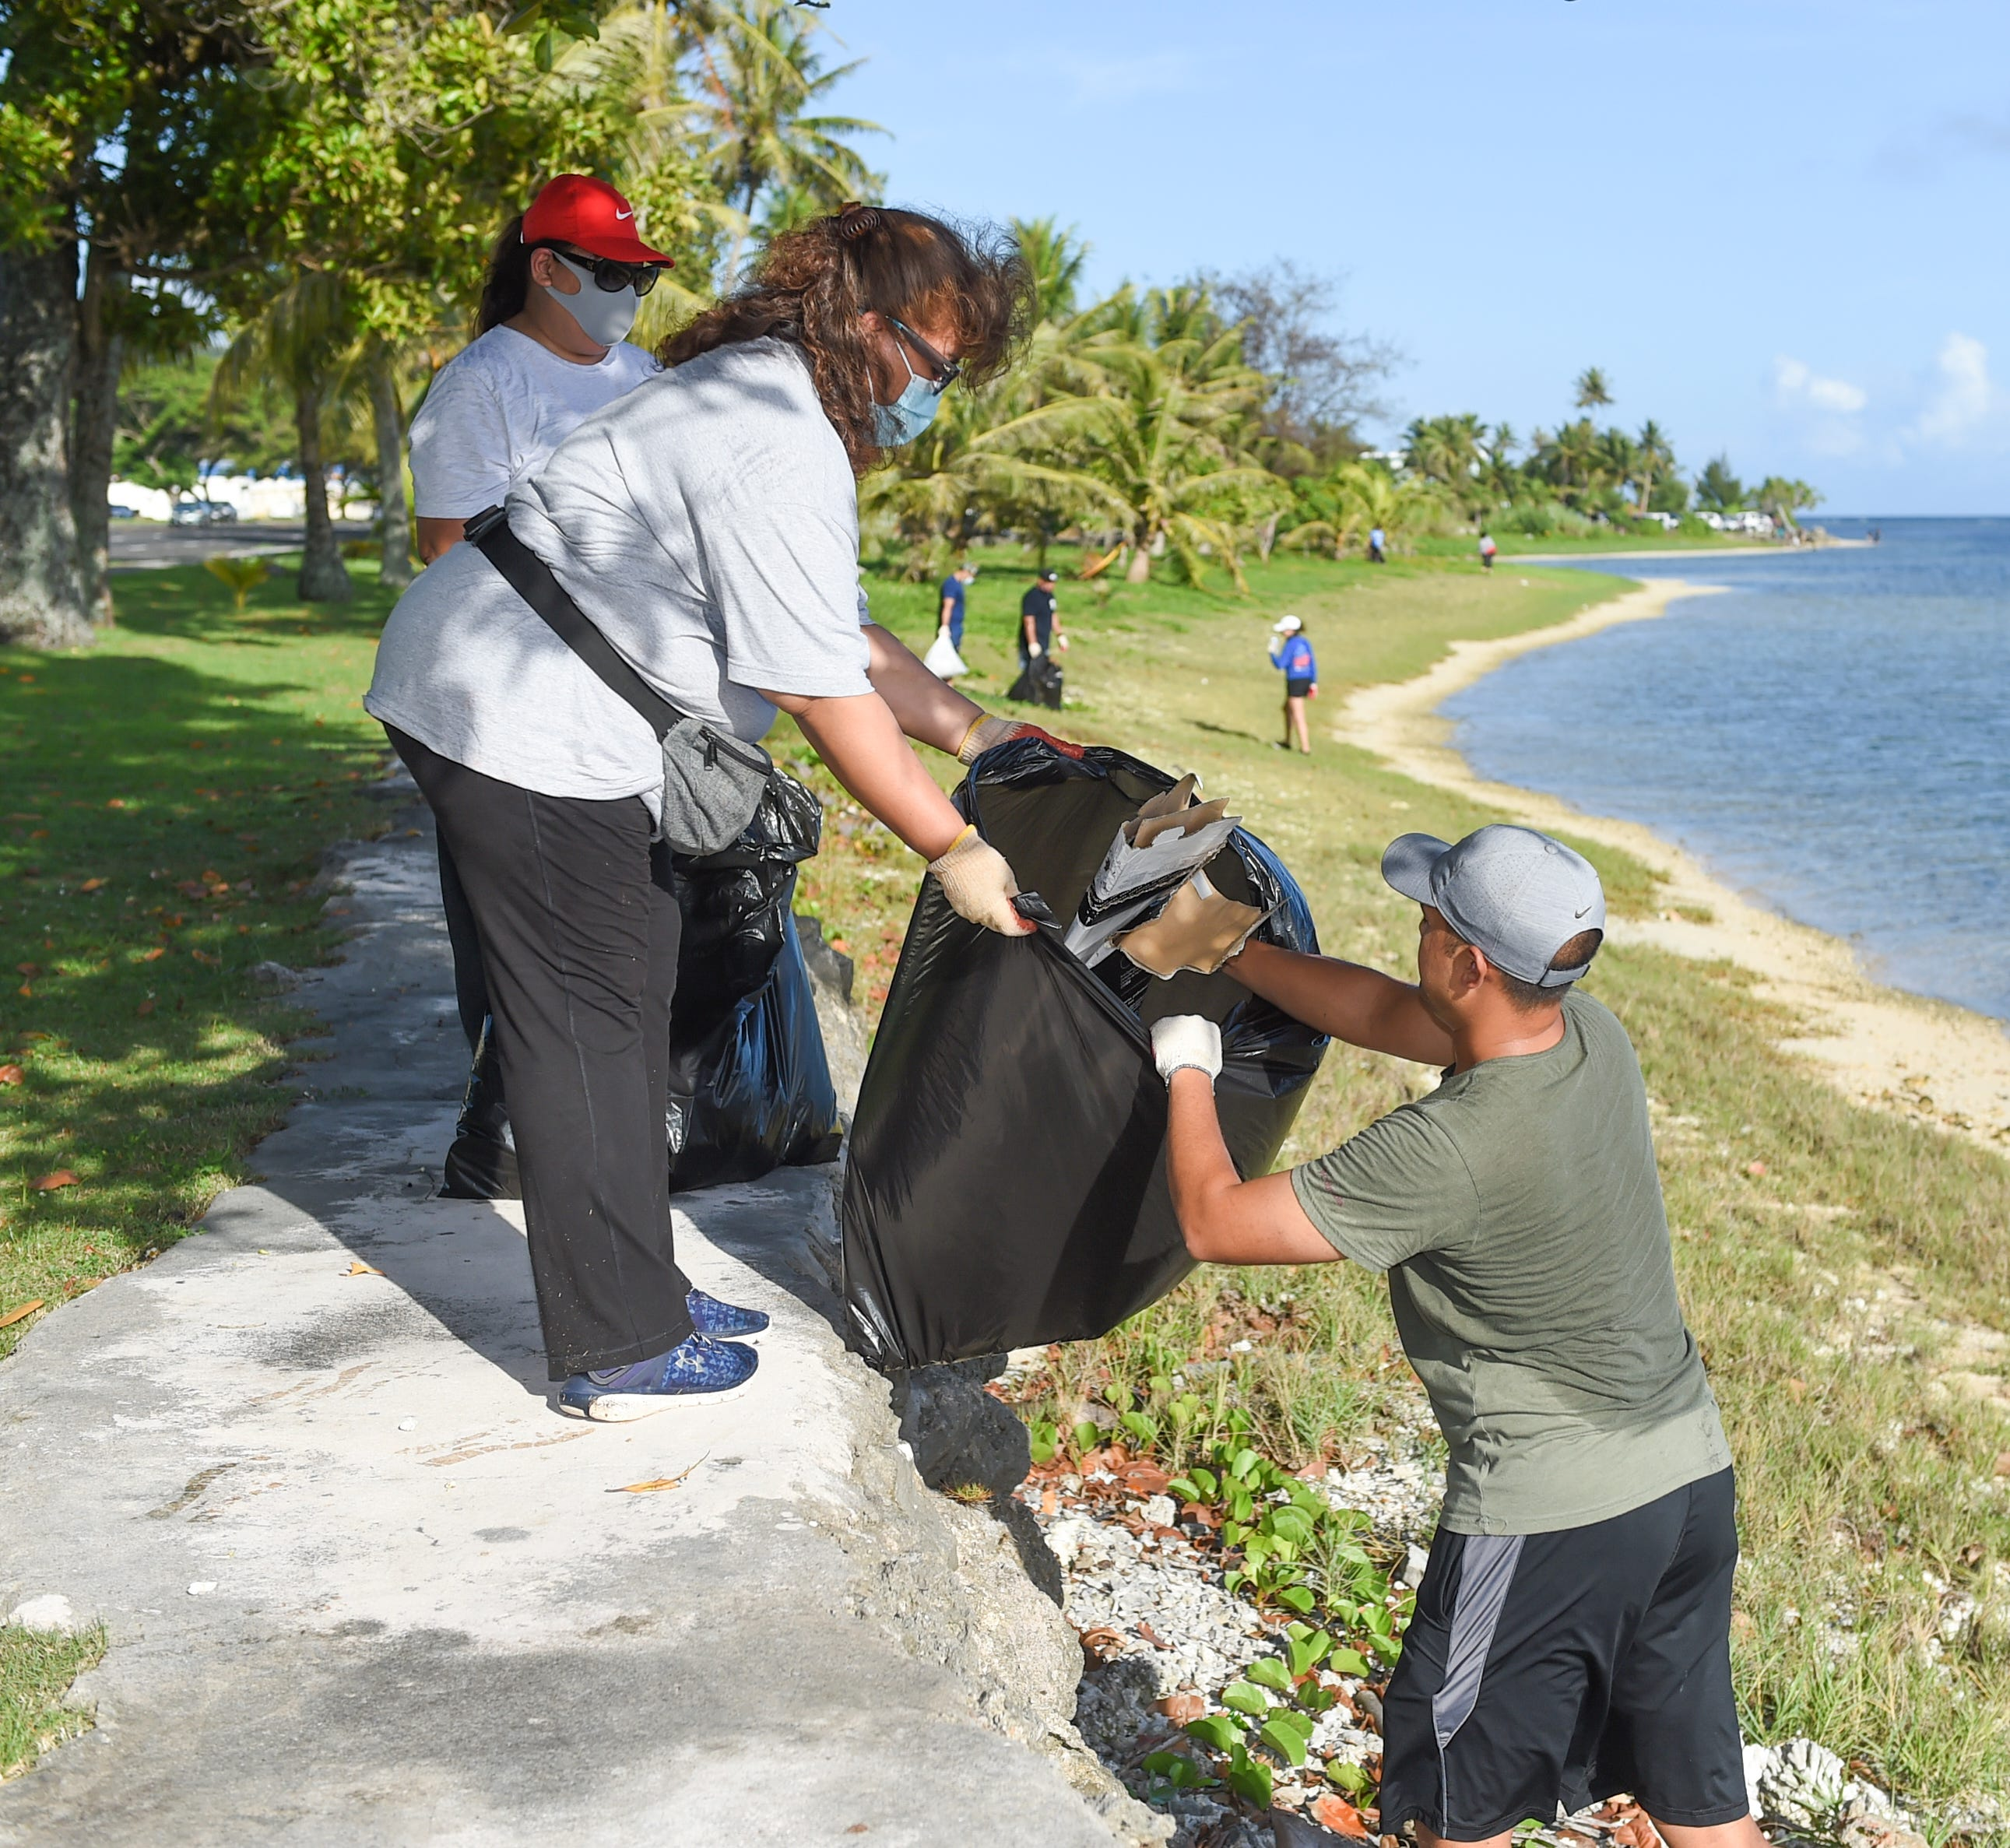 Volunteers from the Superior Court of Guam comb Hagåtña's beach side for rubbish during the #GUAM Island Pride Beautification Event on Aug. 1, 2020.